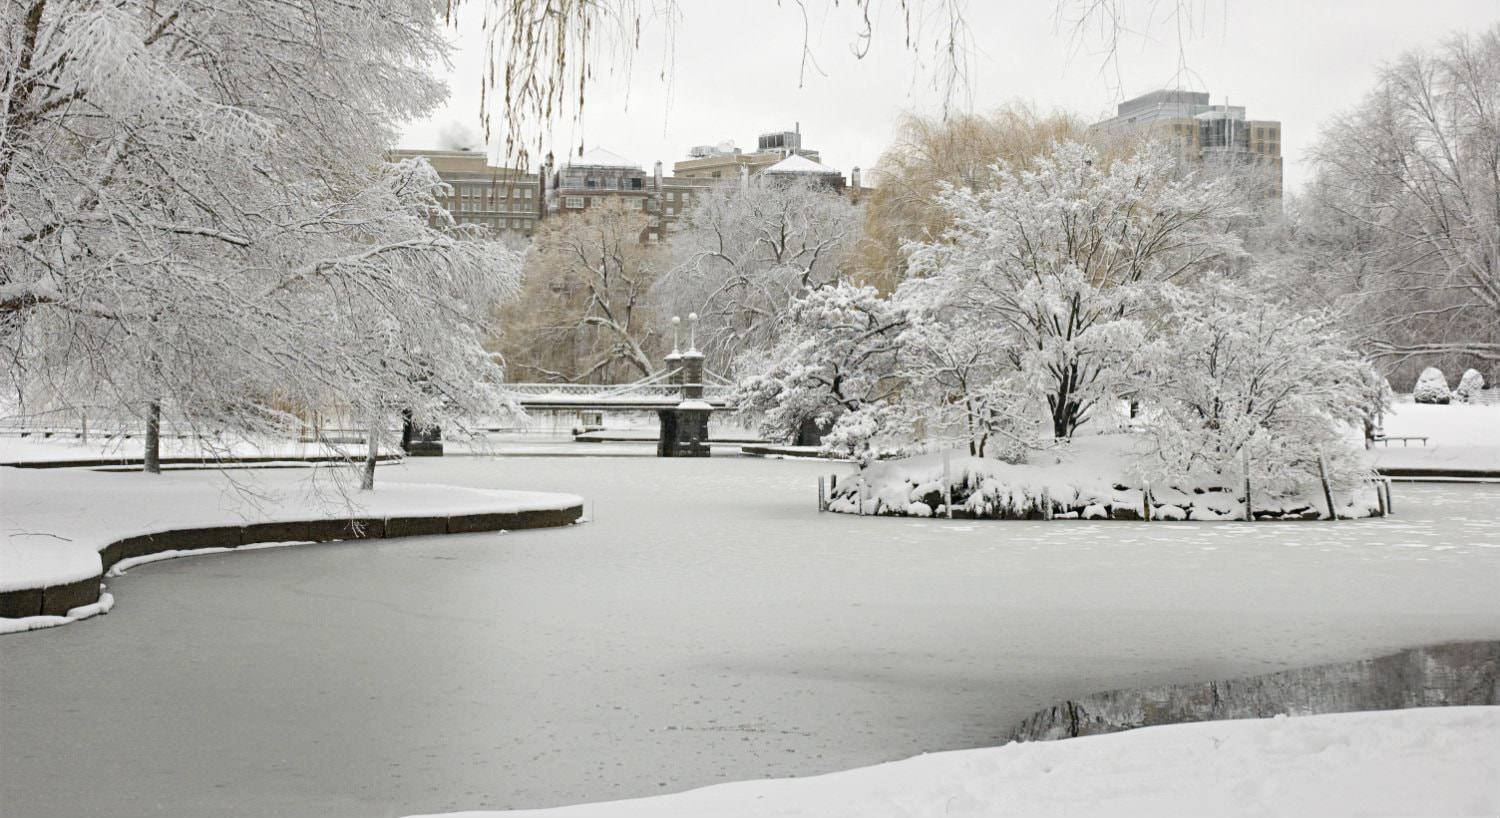 Body of water flowing through a park of trees all covered in white snow